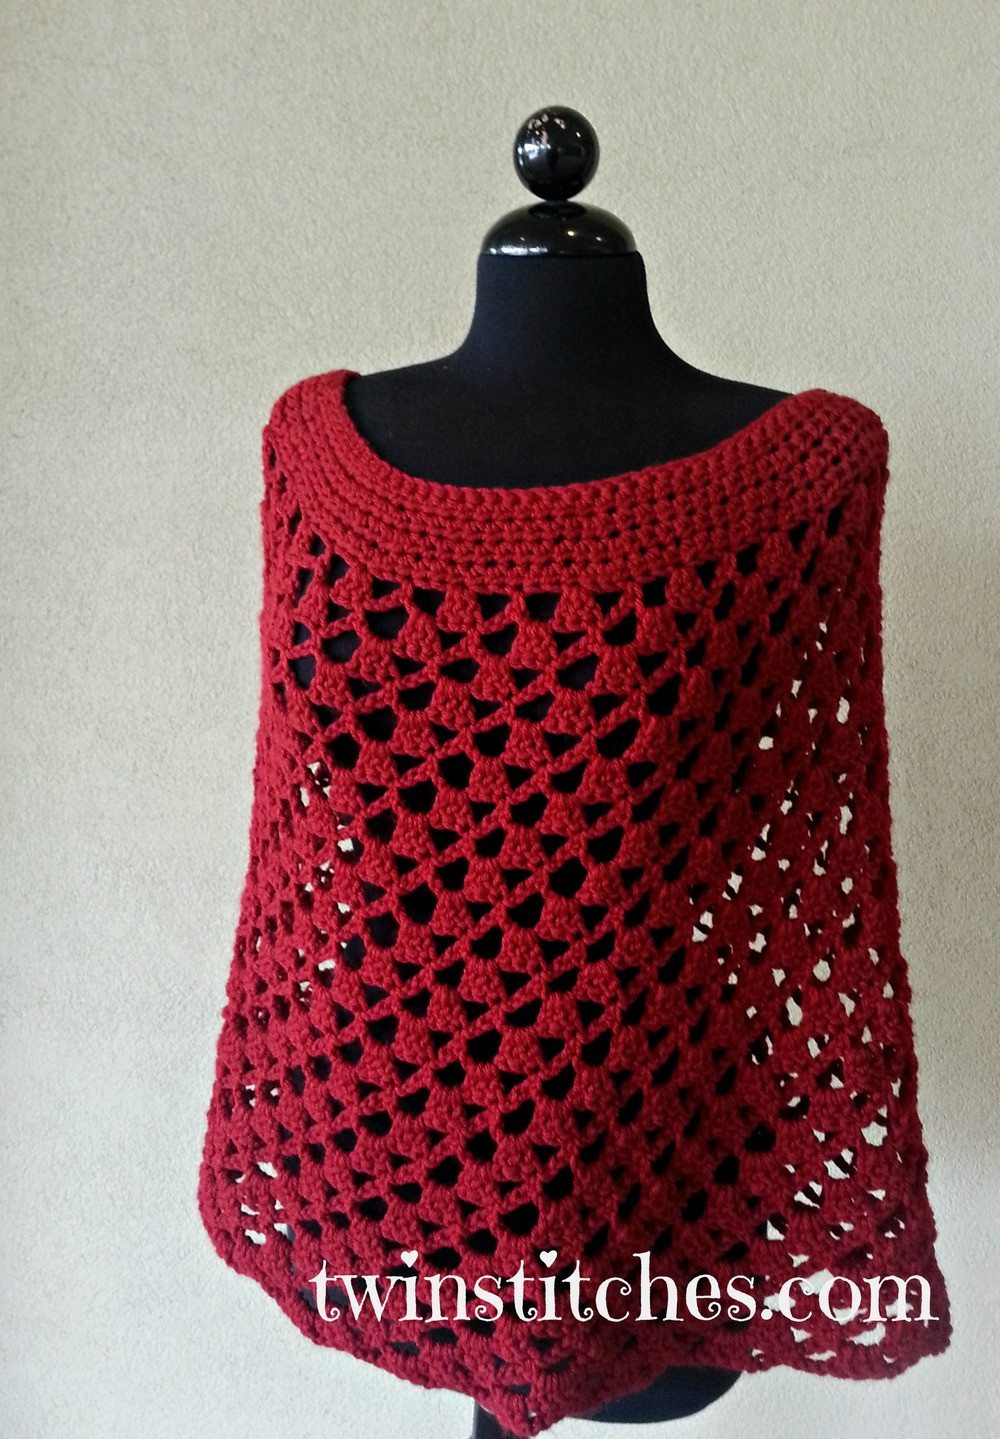 Poncho Crochet Pattern Fresh Scarlett Spiral Crochet Poncho Of Attractive 42 Ideas Poncho Crochet Pattern